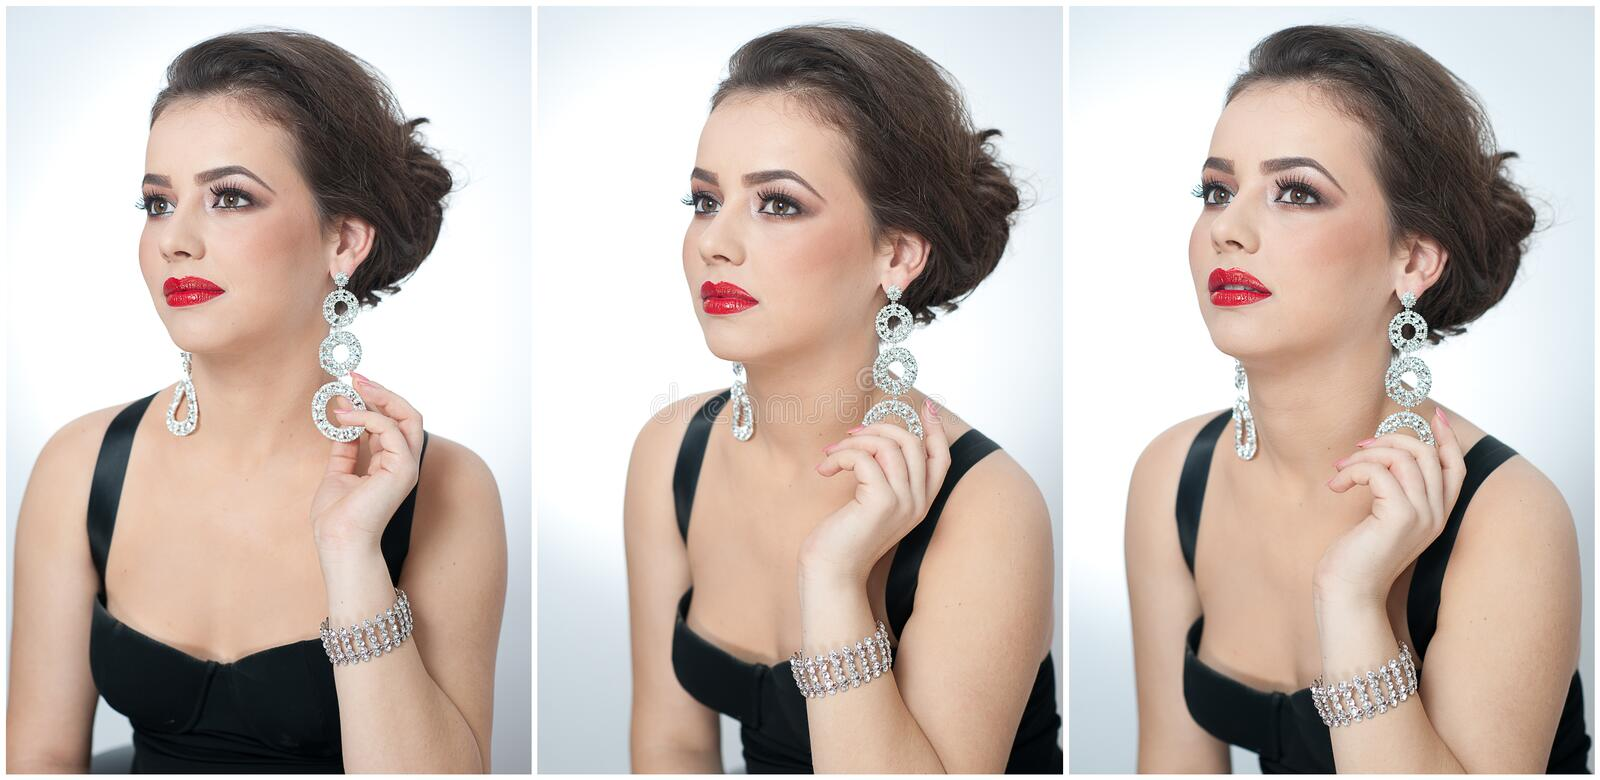 Hairstyle and make up - beautiful female art portrait with earrings. Elegance. Genuine natural brunette with jewelry royalty free stock photos